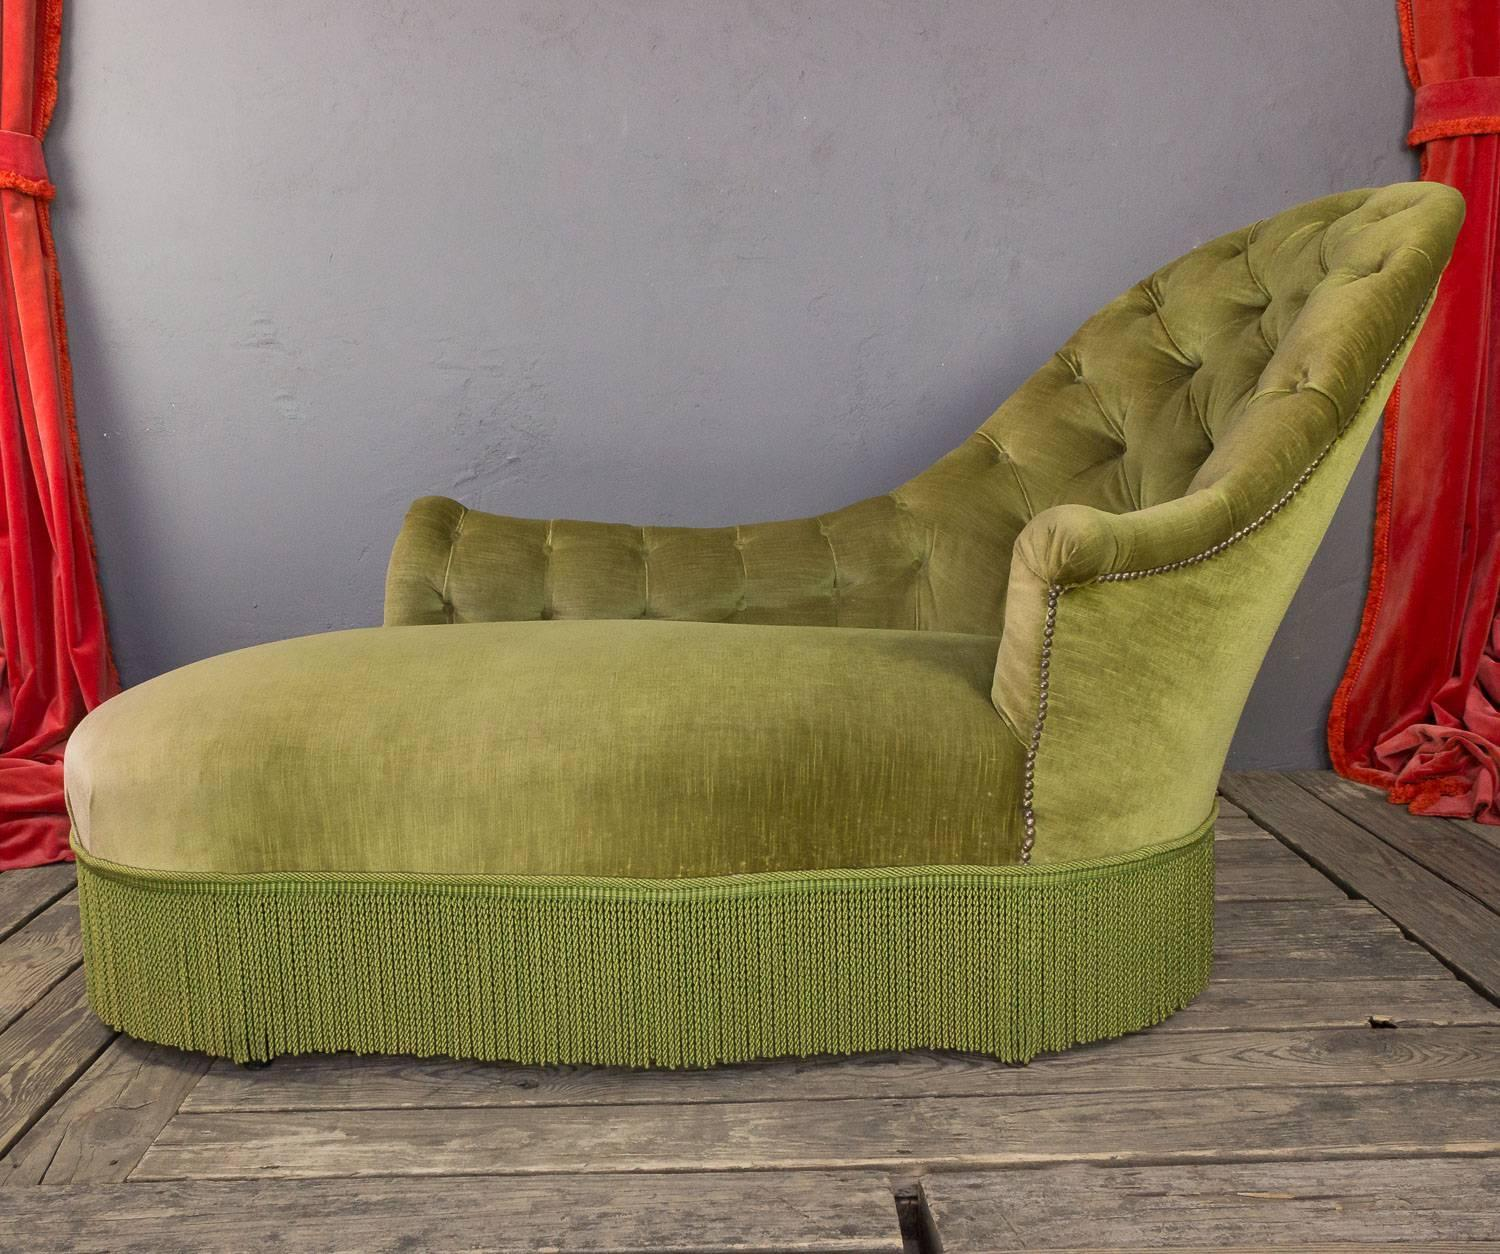 Tufted asymmetrical green chaise longue for sale at 1stdibs for Chaise longue 200 cm